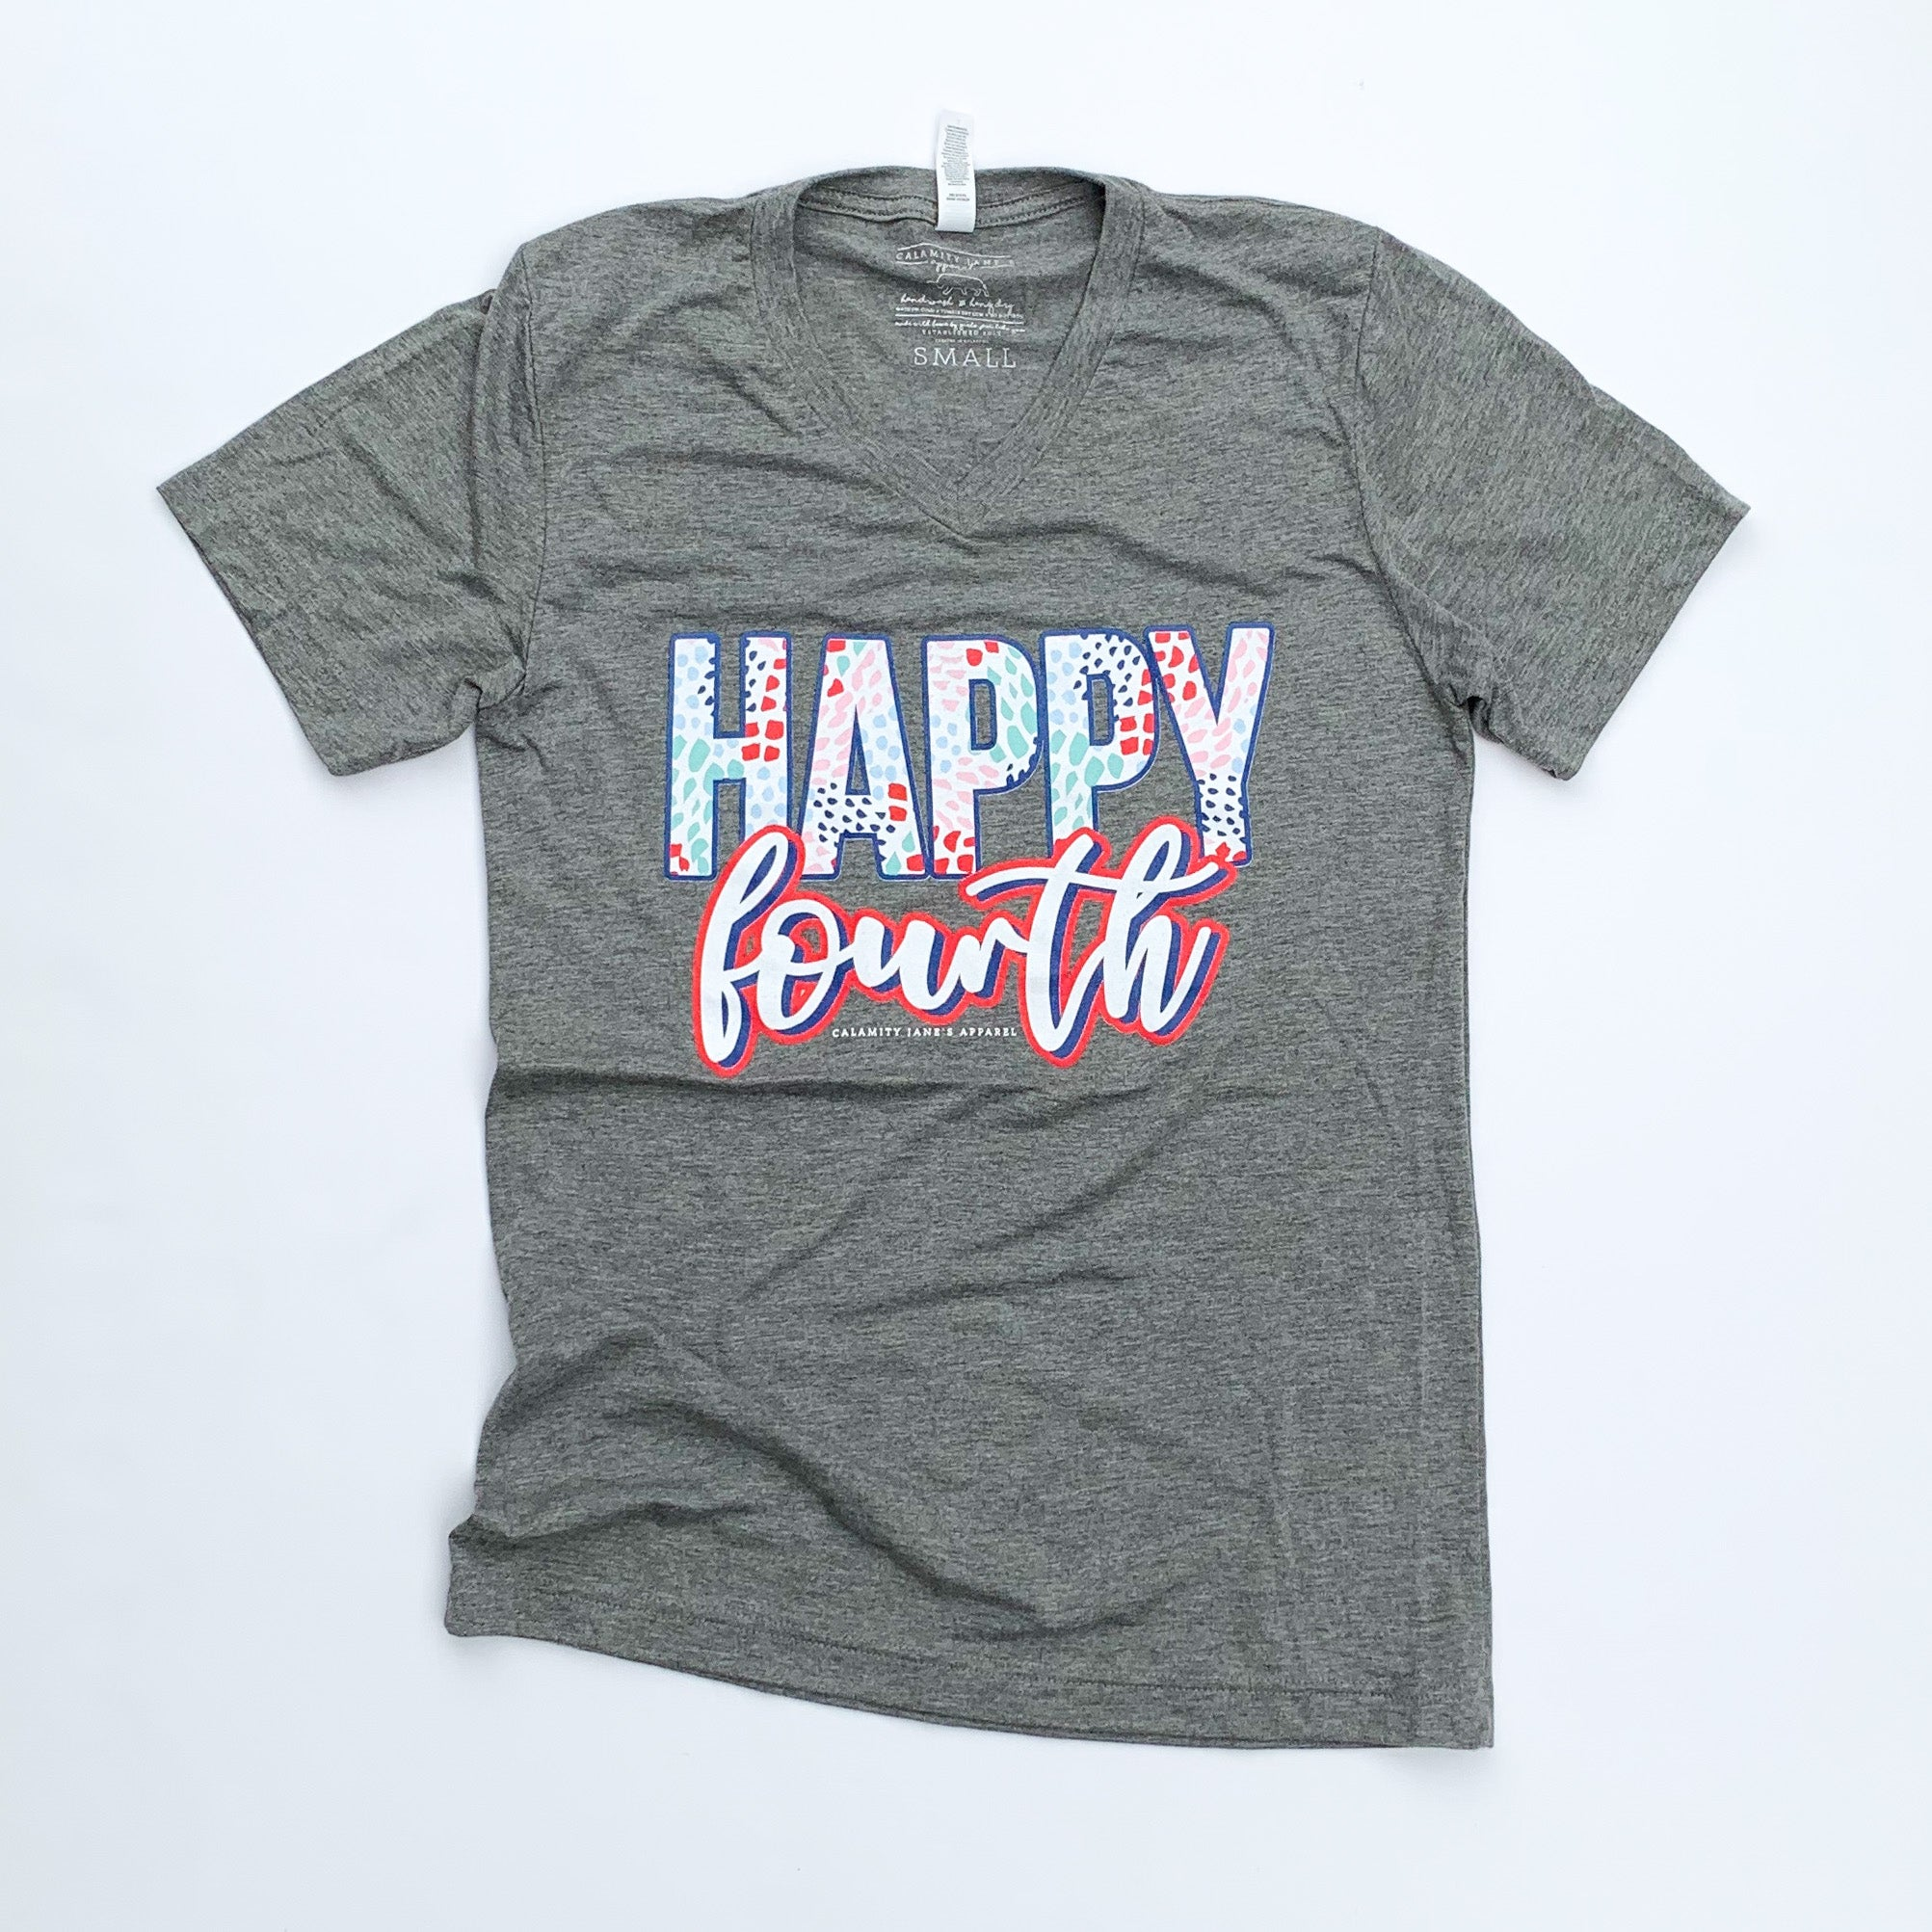 SALE ITEM: AMERICAN SPIRIT 2020: Happy Fourth